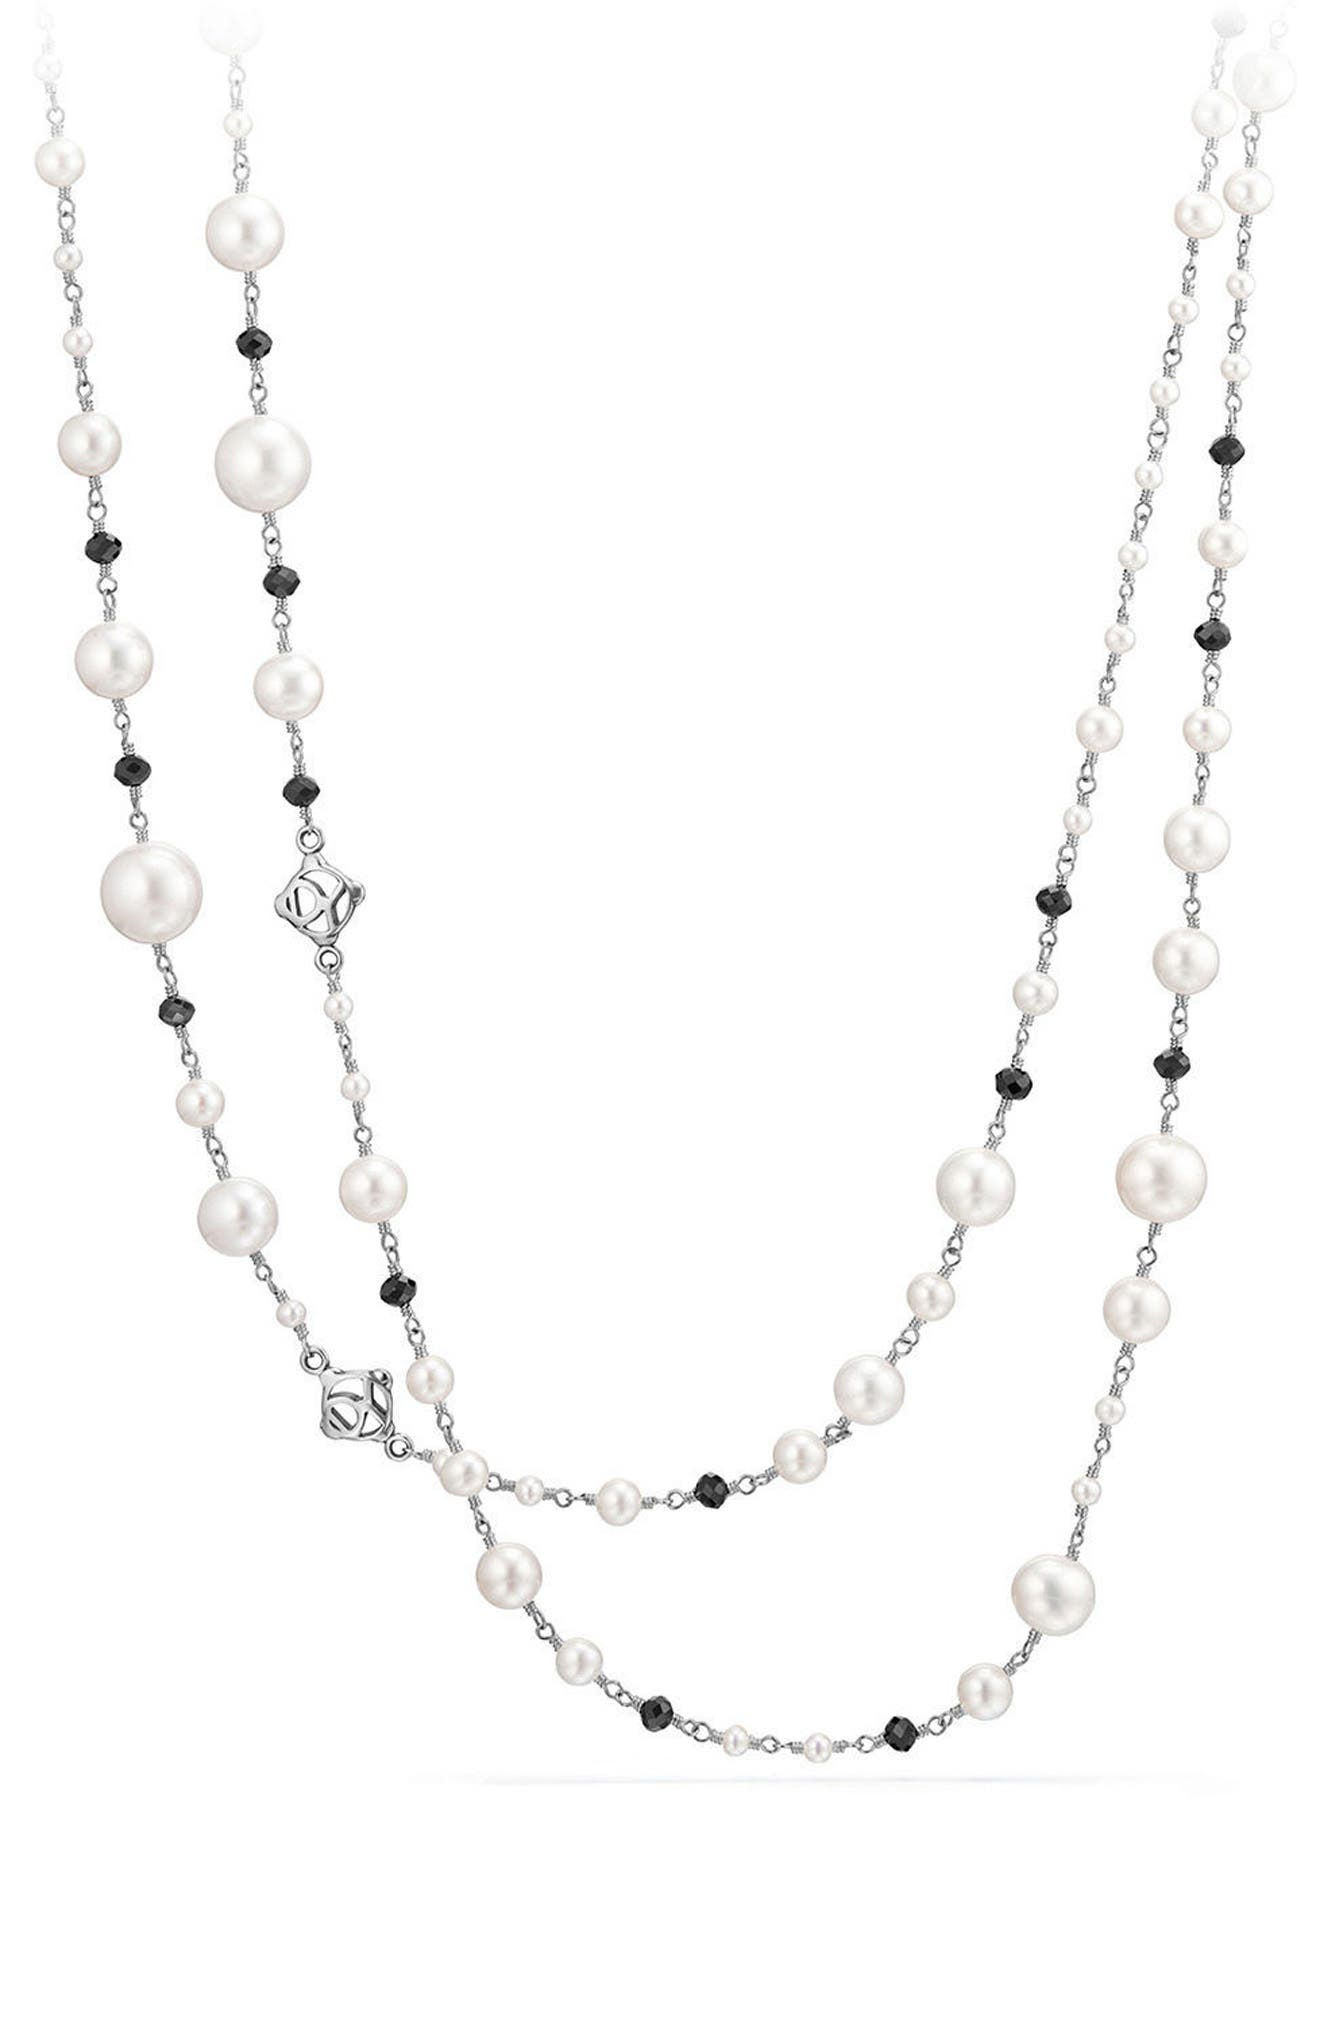 Solari Pearl & Bead Necklace,                             Main thumbnail 1, color,                             PEARL/ BLACK SPINEL